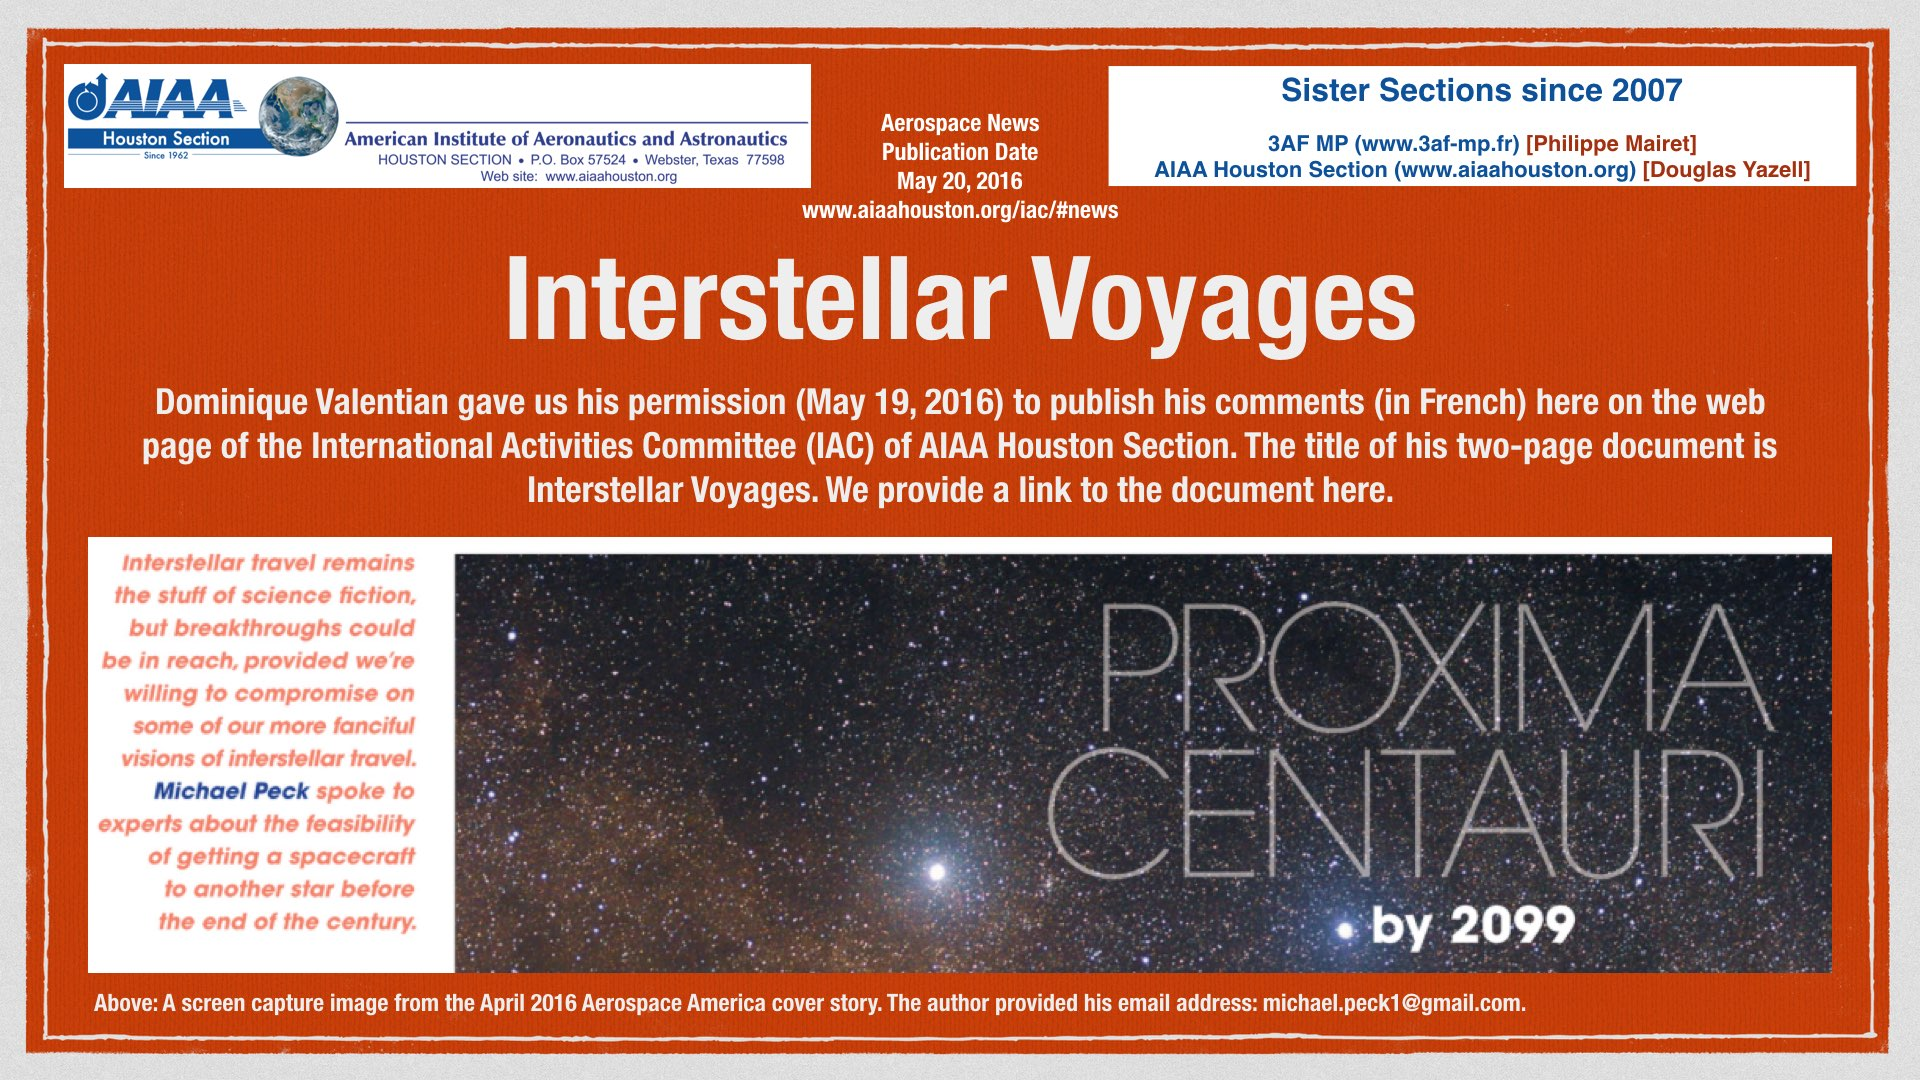 Above: As part of our French sister section relationship activities, we are pleased to present the document Interstellar Voyages by Dominique Valentian. (Click to zoom.)